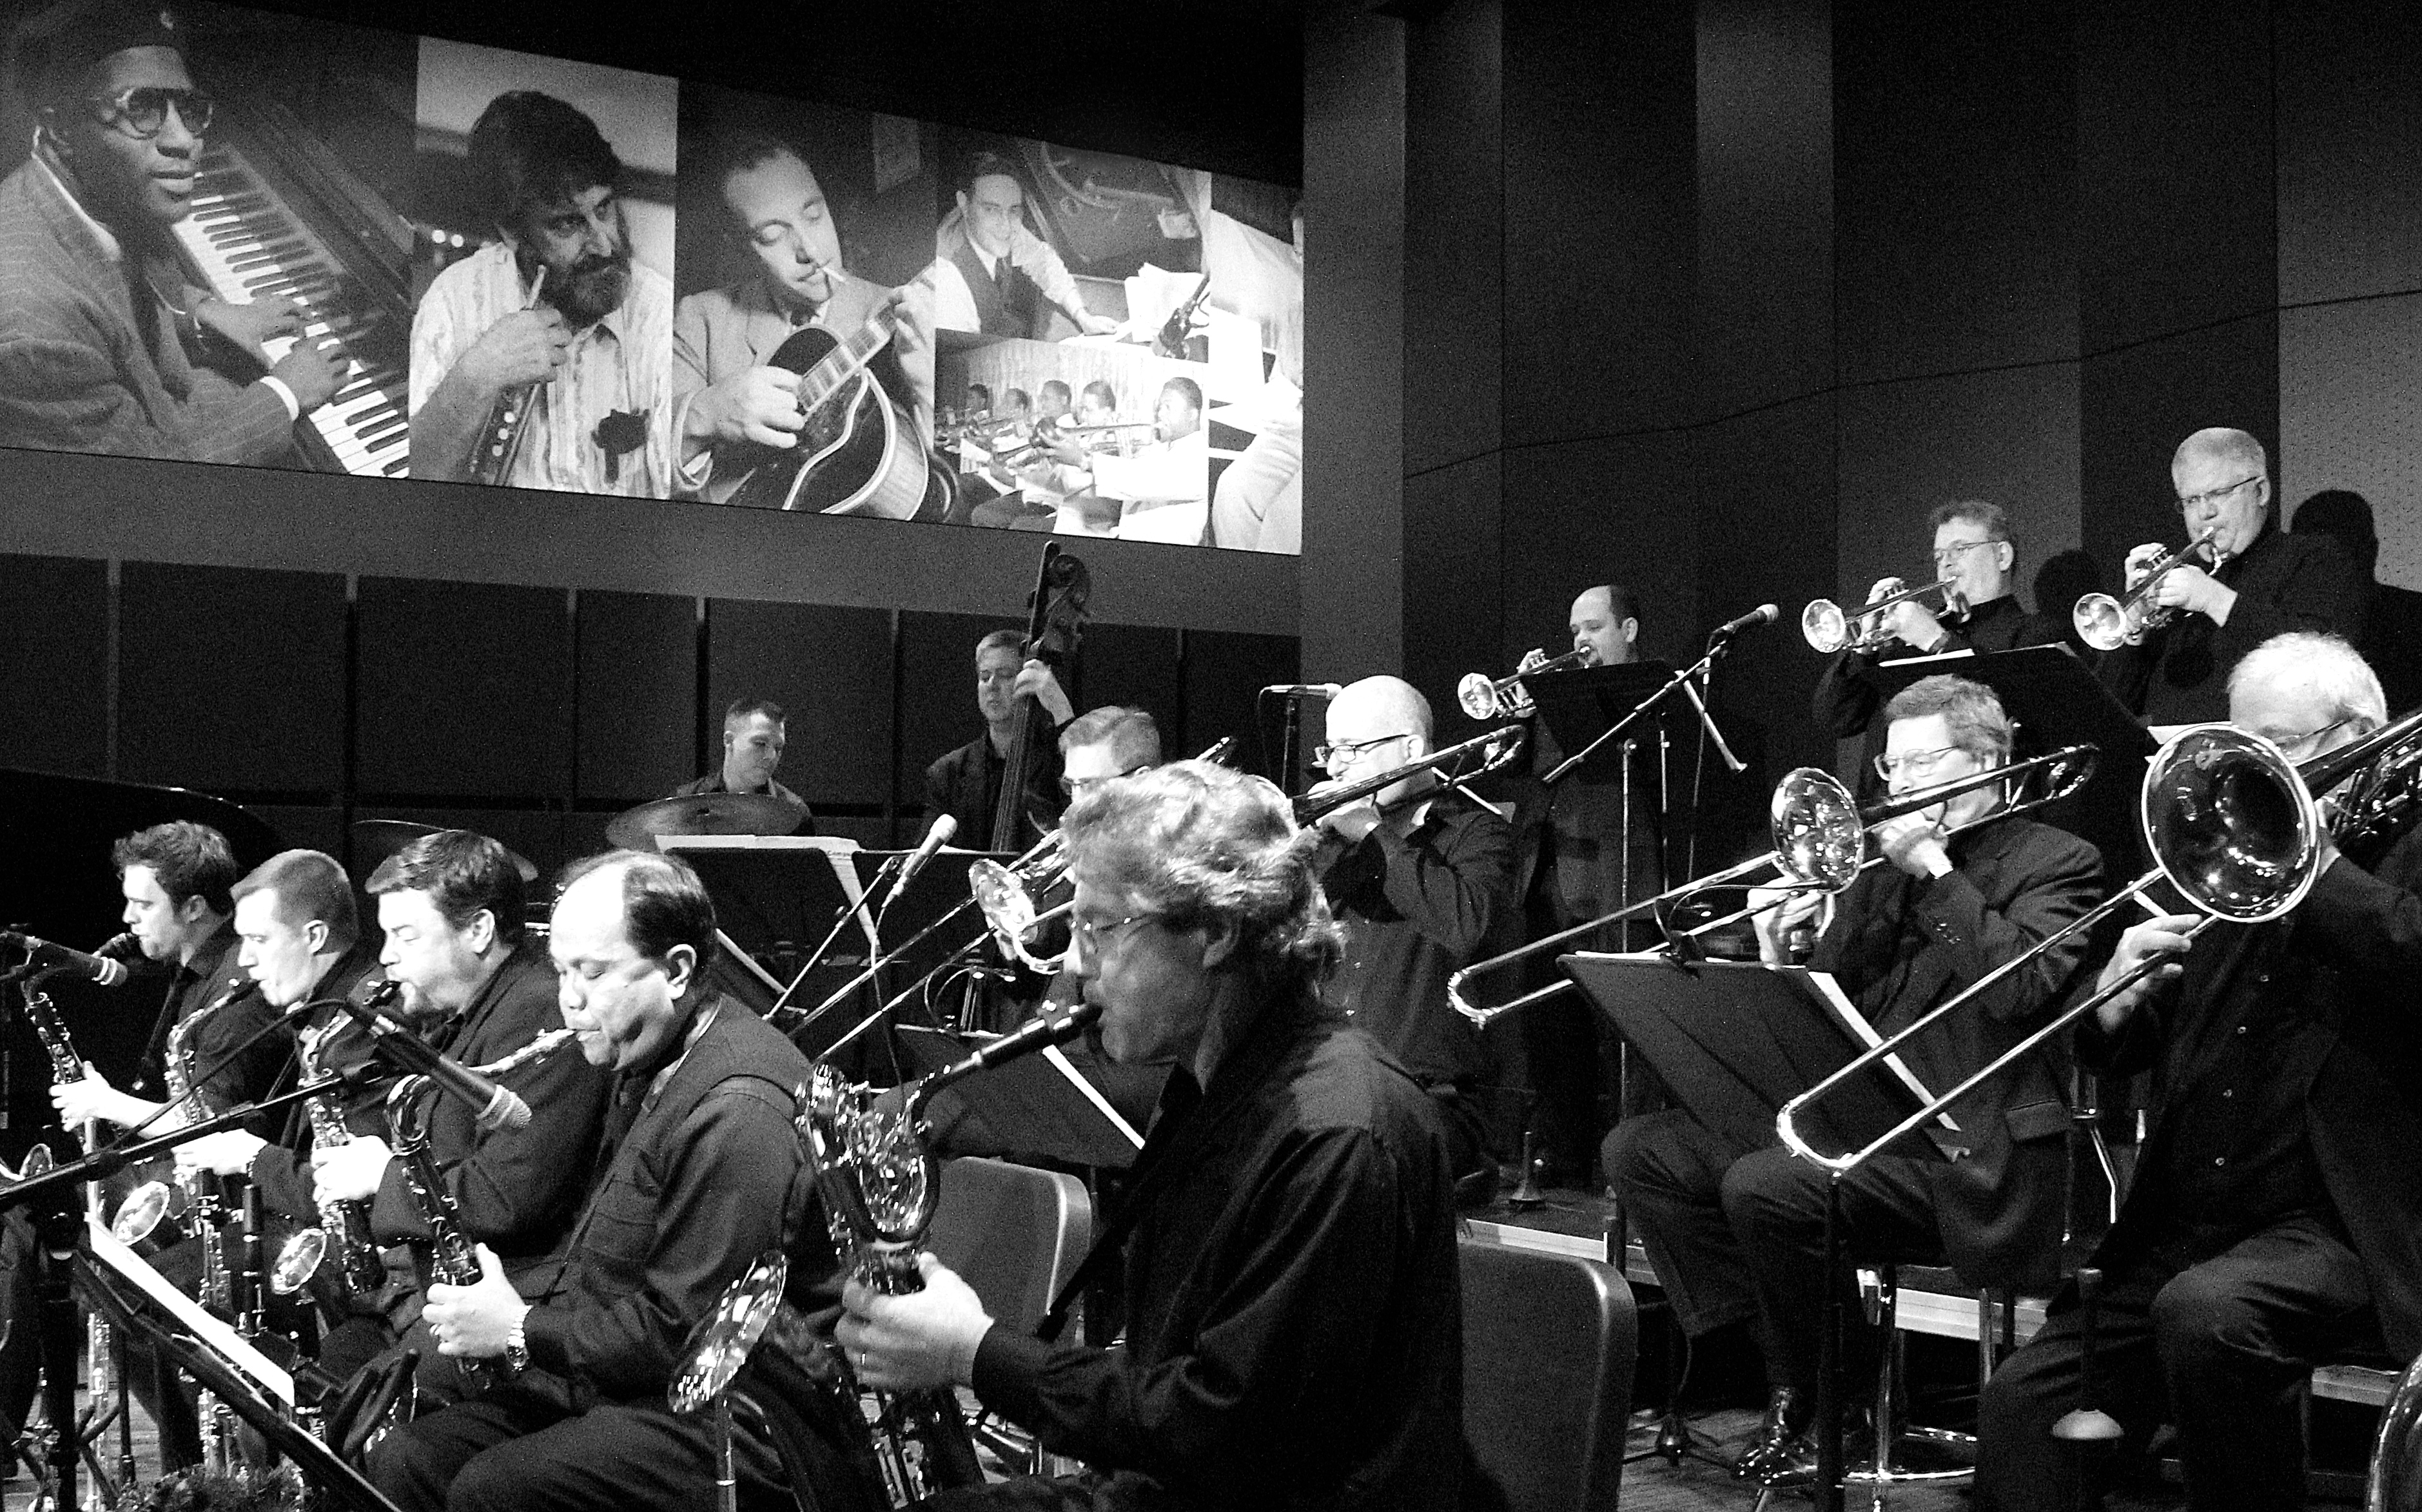 turner jazz orchestra